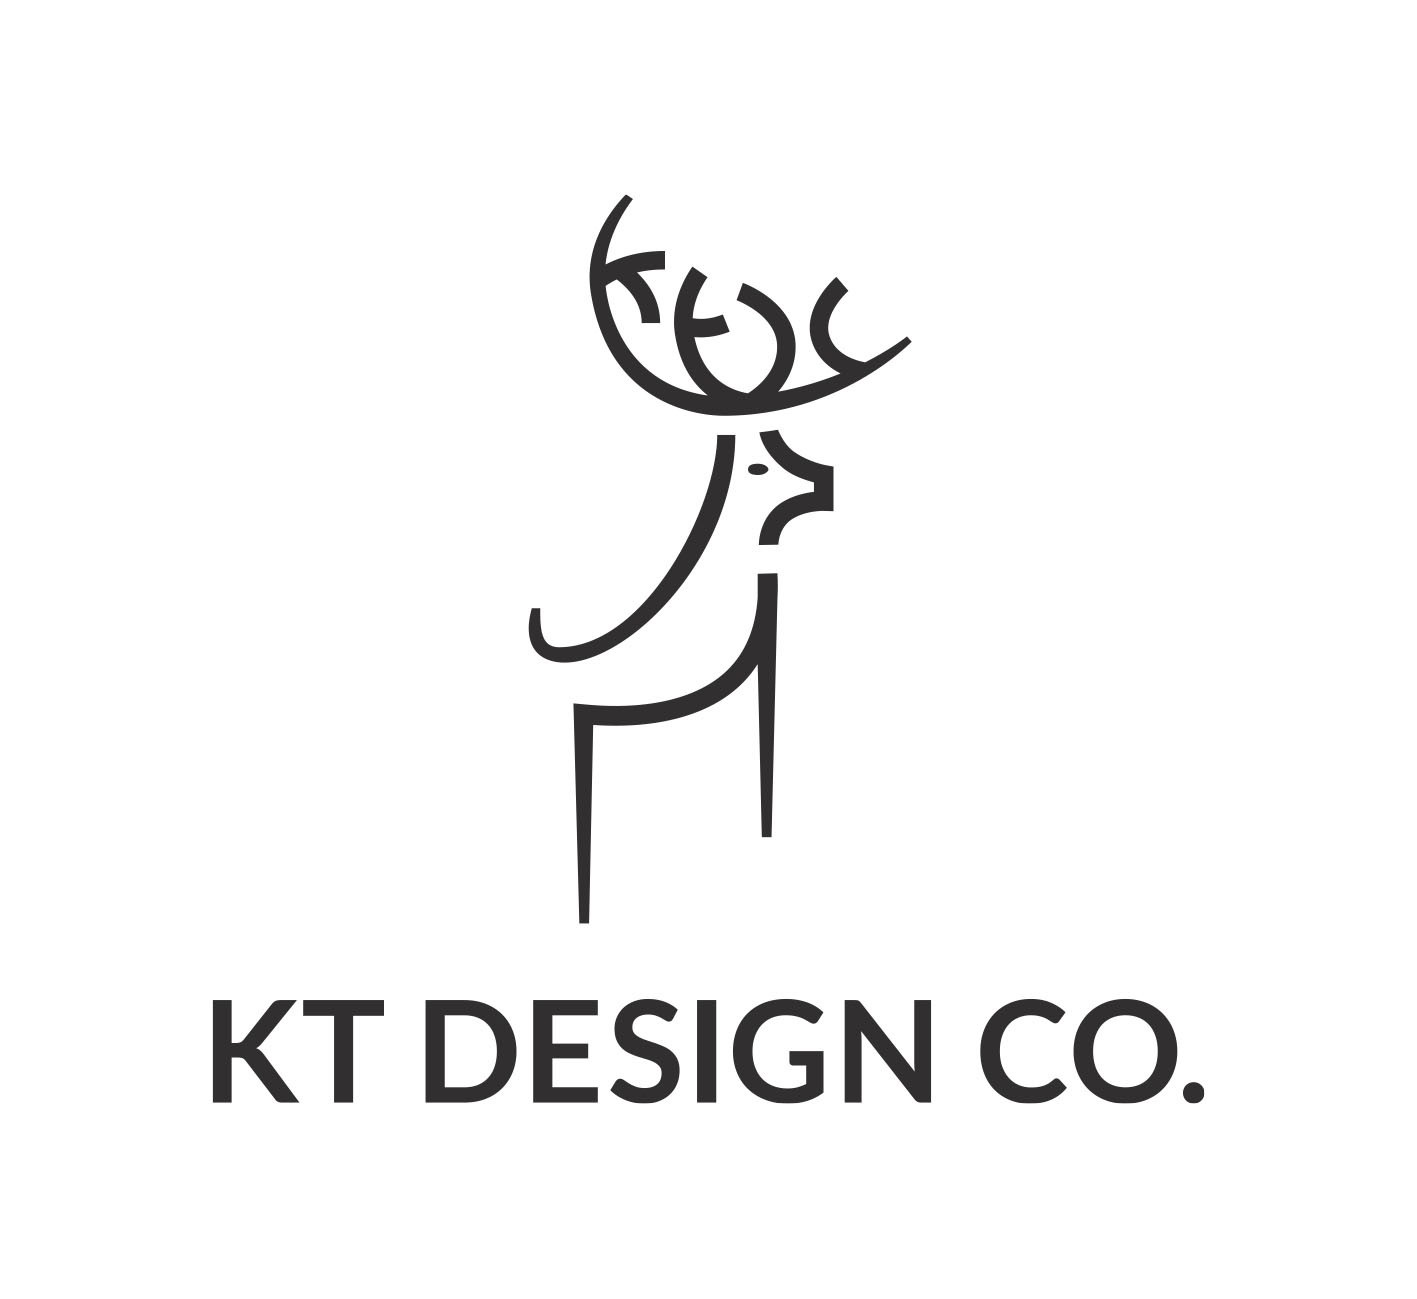 KT Design Company needs a unique and creative logo!